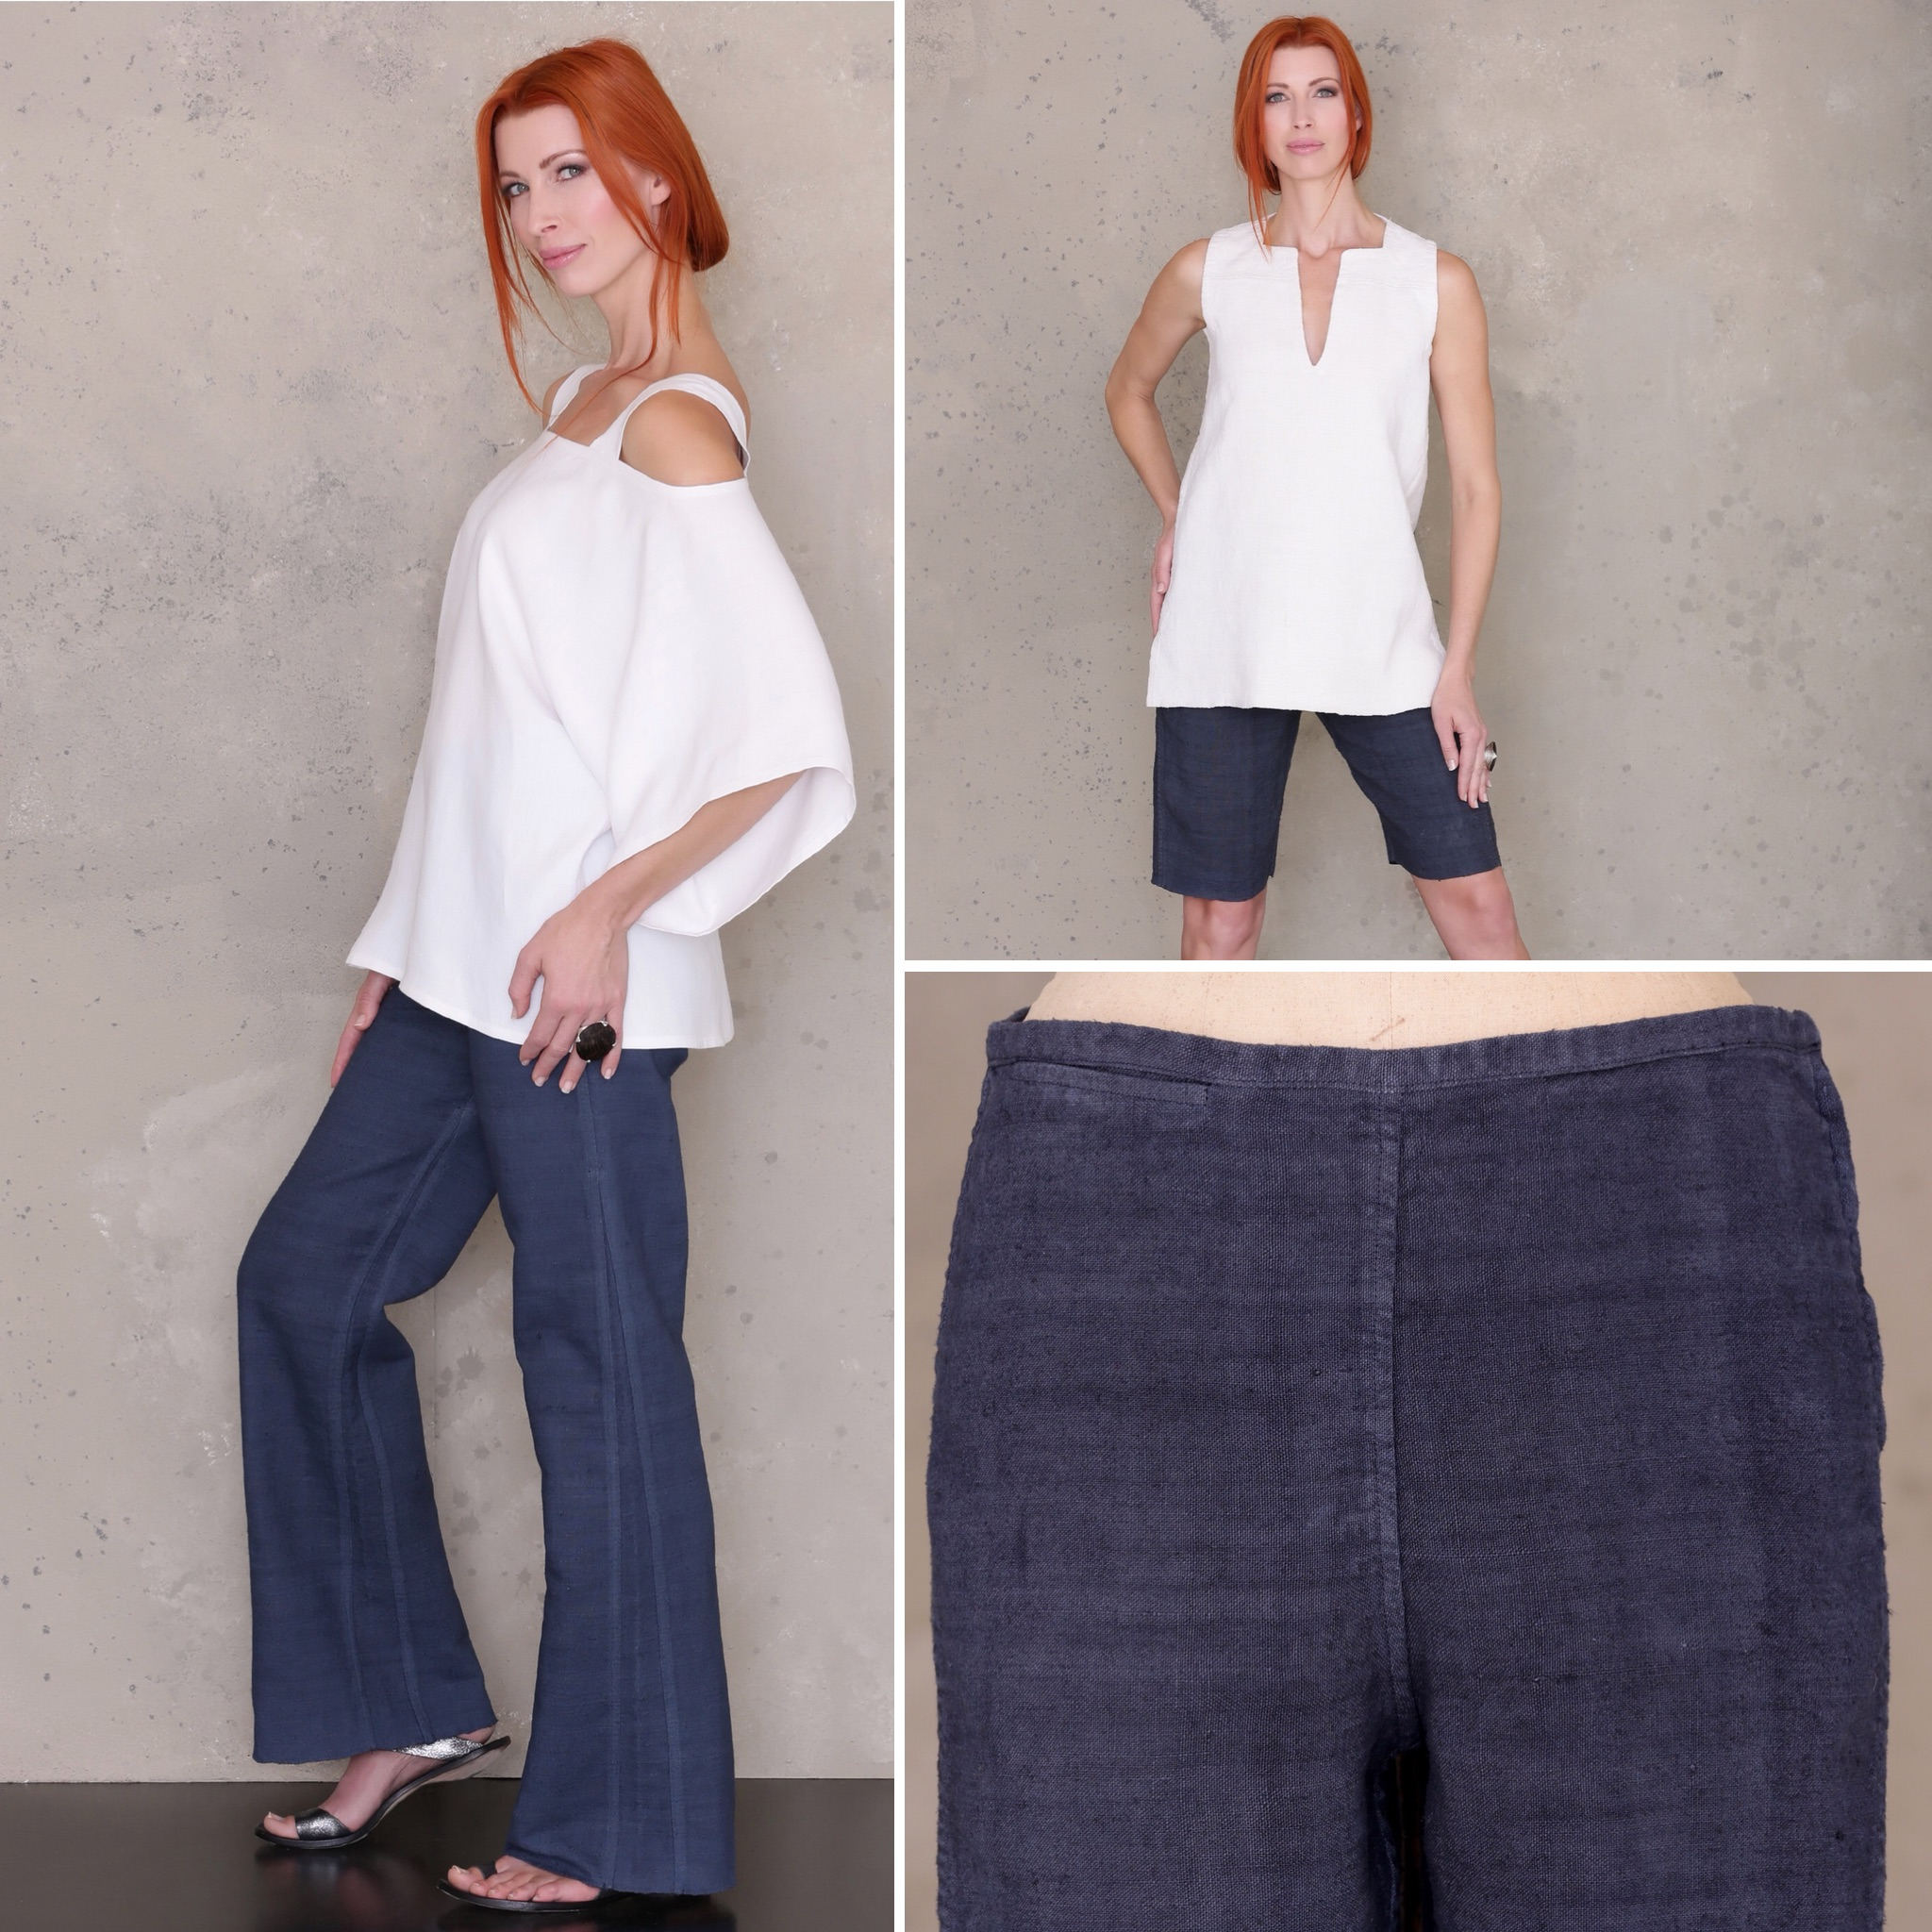 Ann Normandy Design Pants and Shorts Sewing Patterns are coming soon.  Subscribe to our newsletter for release!